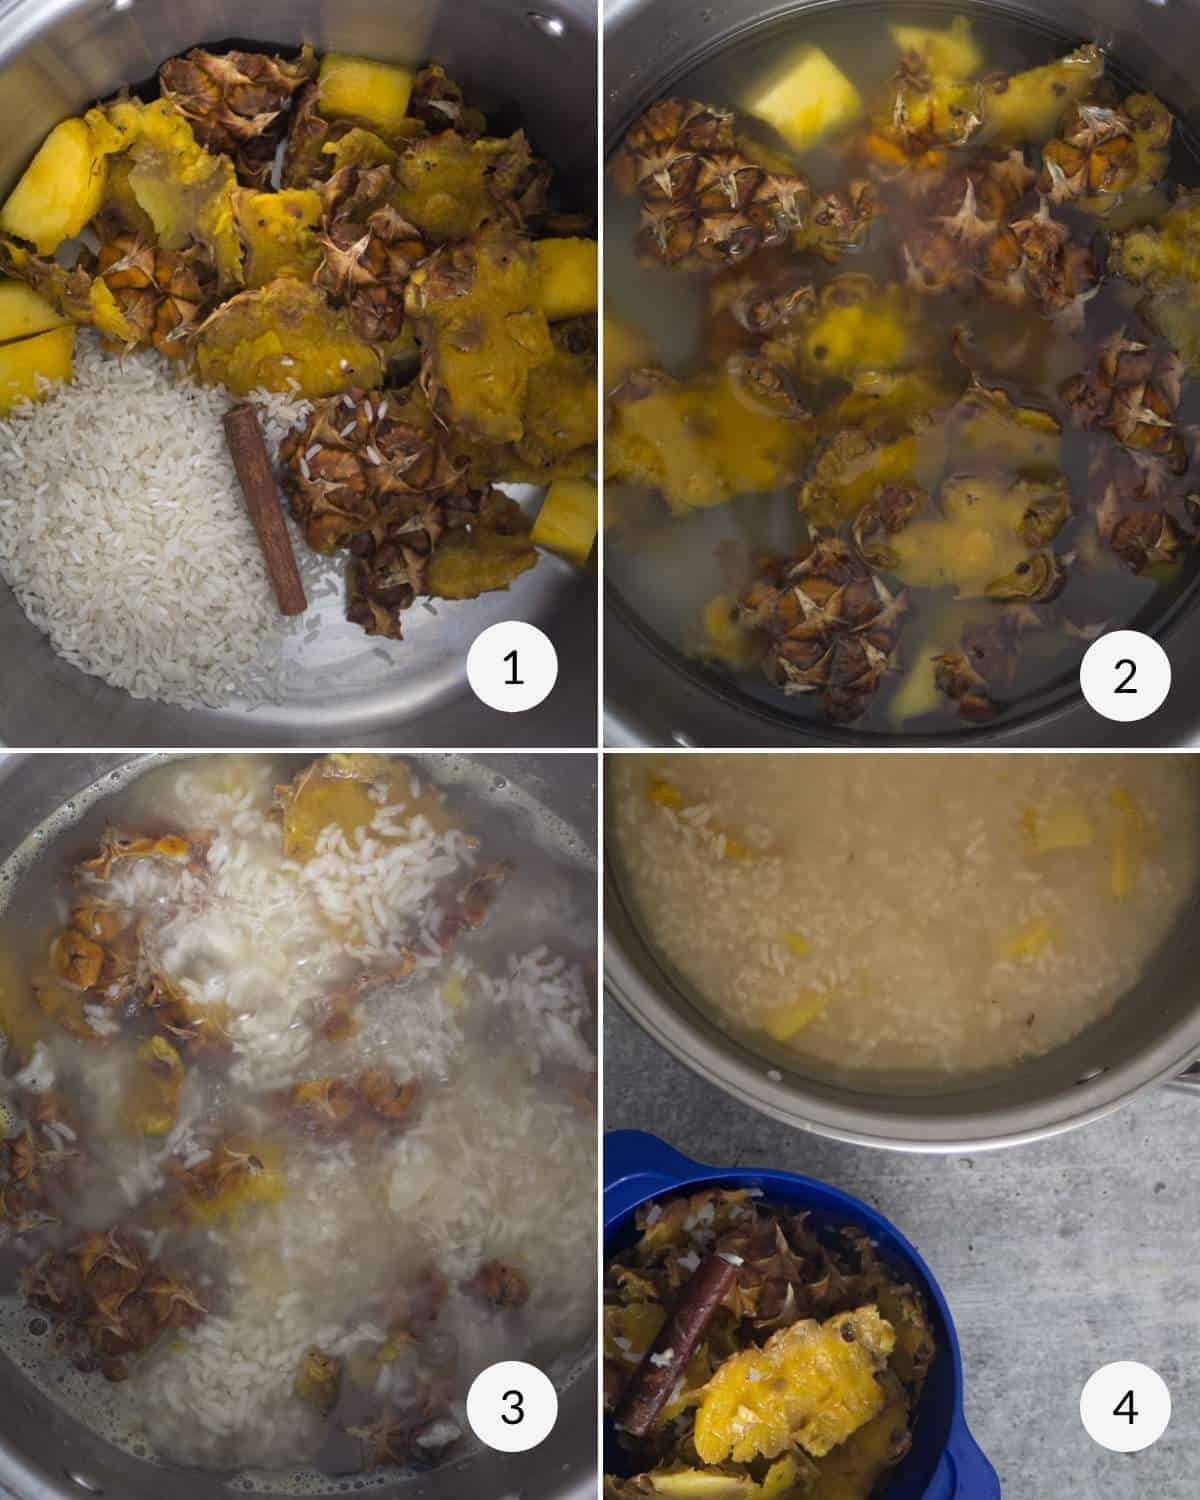 Step by step photos showing how to cook the rice and pineapple peel.